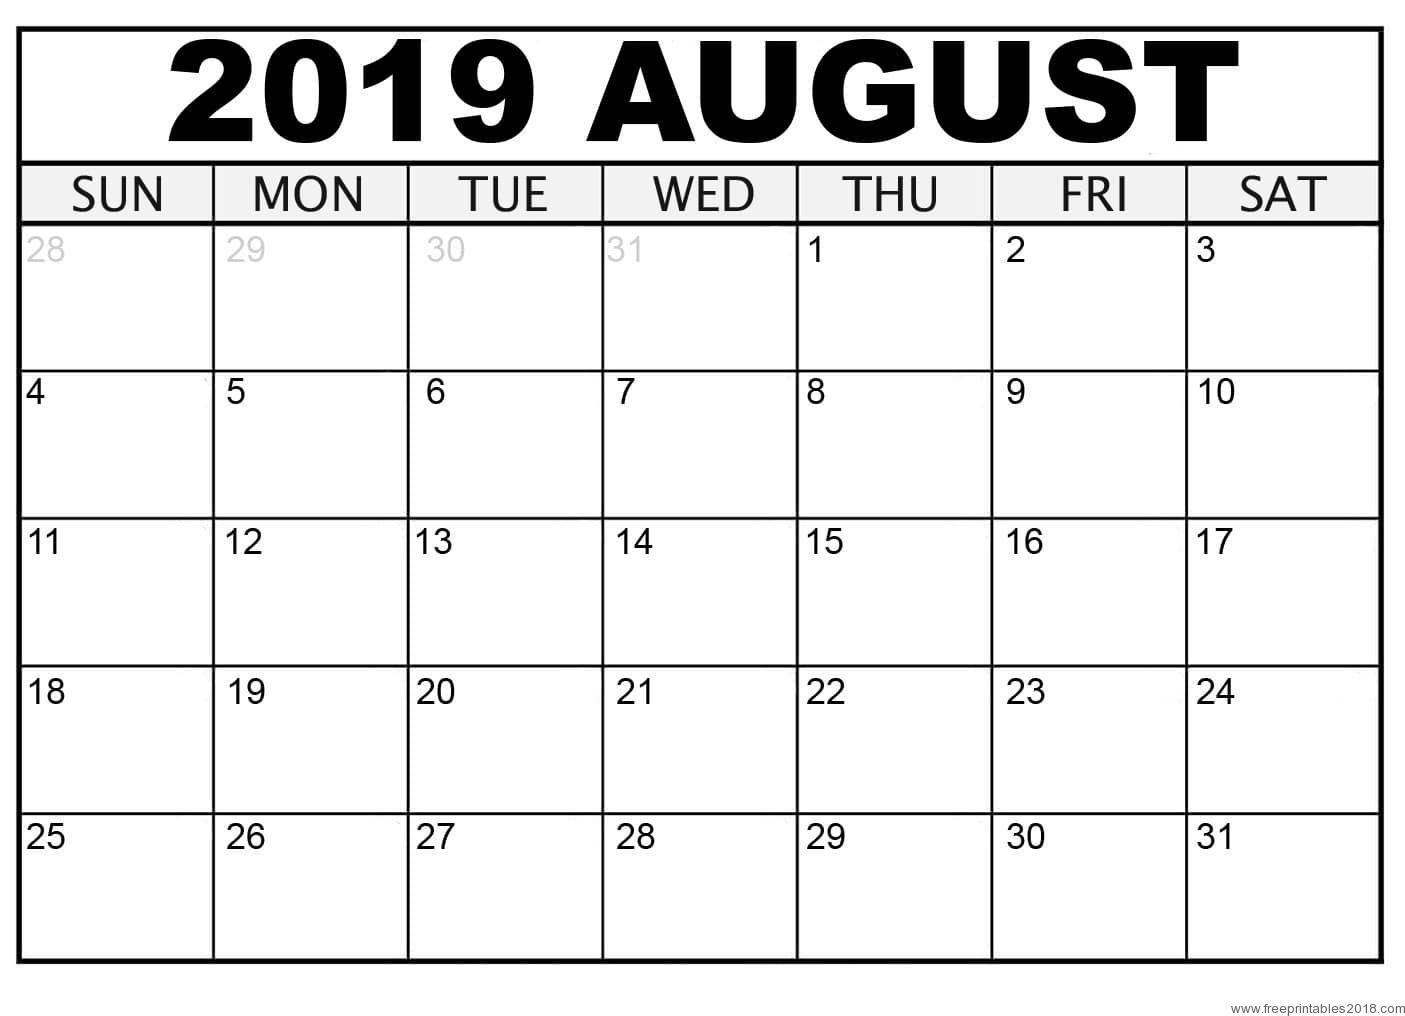 Calendar August 2019 - Free Printable Templates | Free